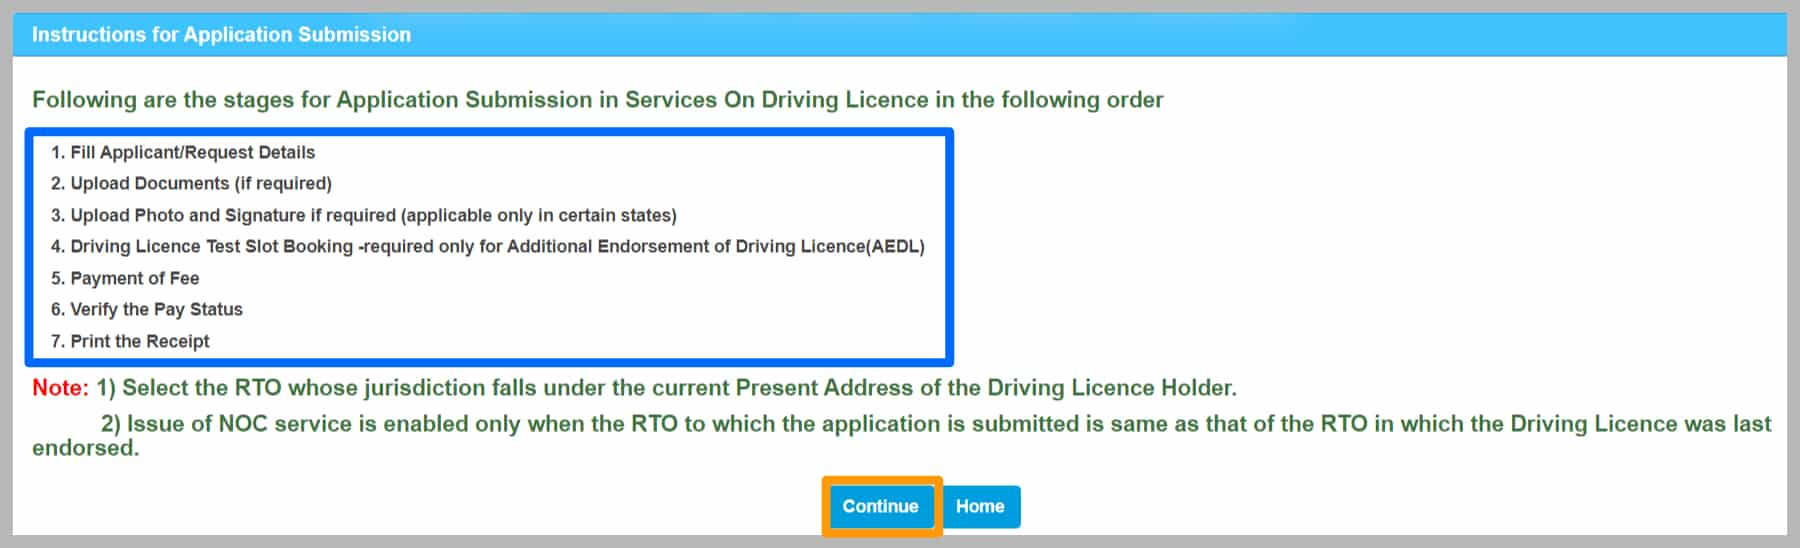 renewal-of-drivers-license-online